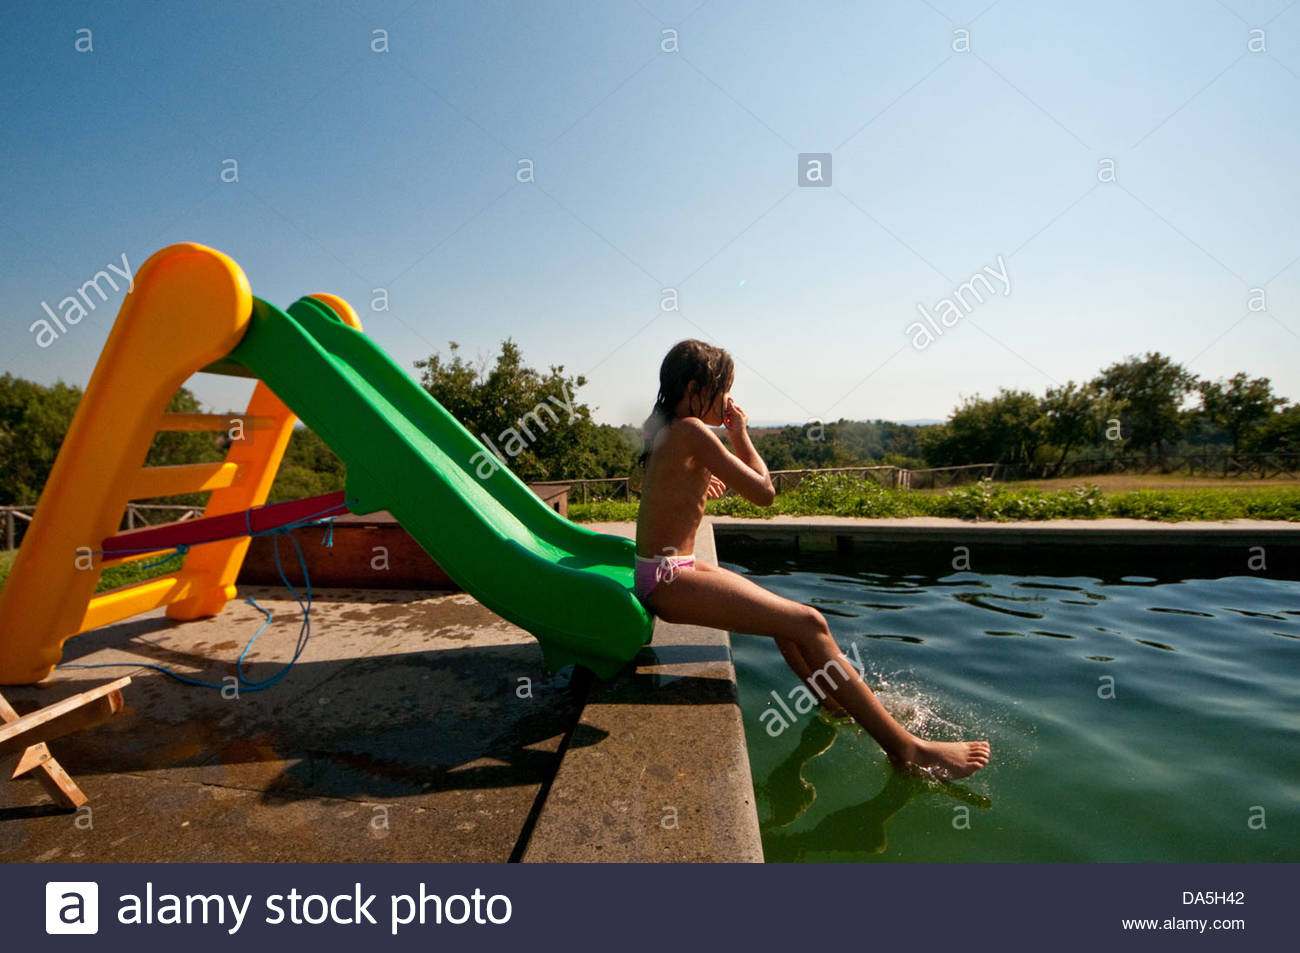 girl in the pool on a slide Stock Photo